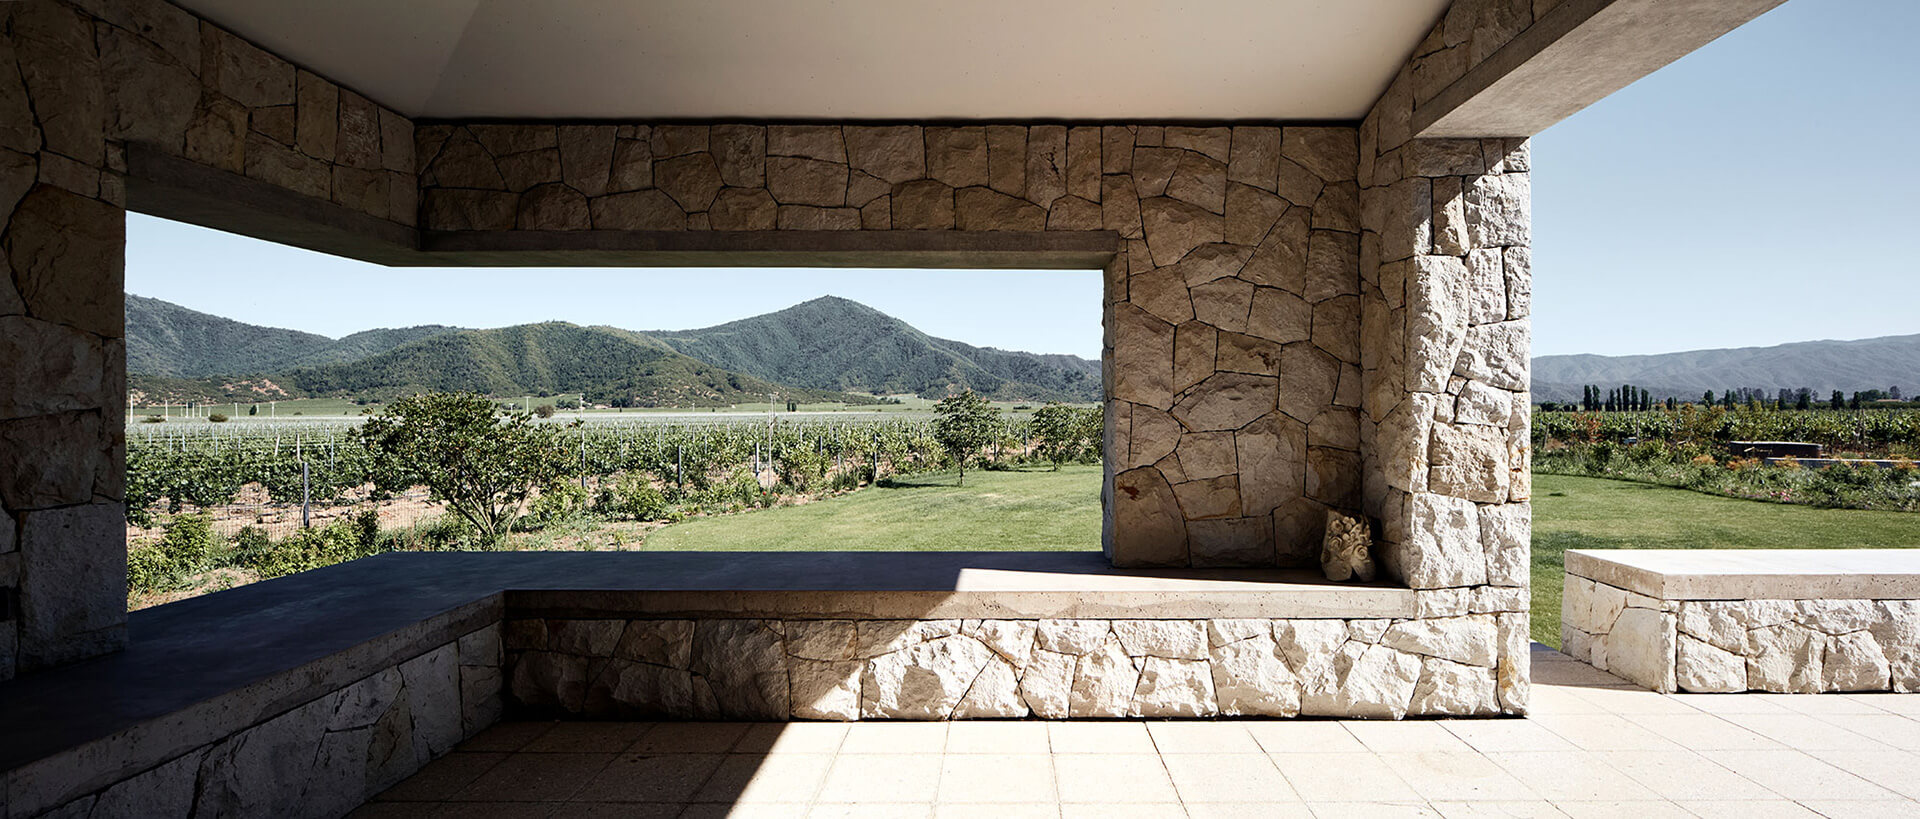 The design of Casa Tapihue lets residents enjoy the natural landscape | Matías Zegers | STIRworld